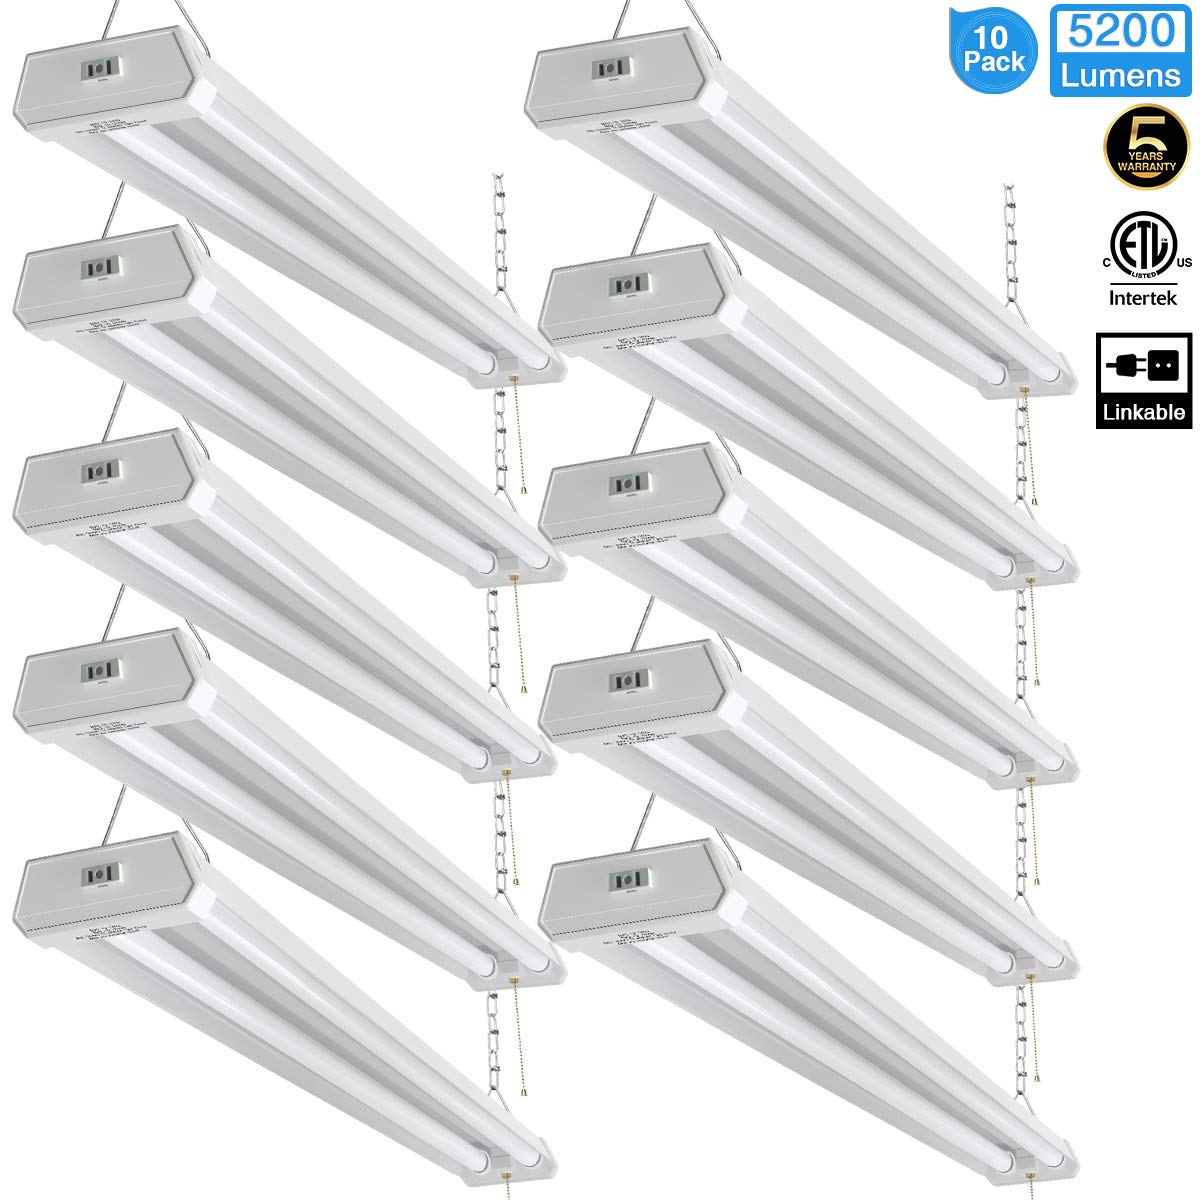 Linkable LED Shop Light for Garage, 42W 5200lm 4FT, 6000-6500K Daylight White, with Pull Chain (ON/Off) cETLus Listed, 5-Year-Warranty, 6000K (10PK)